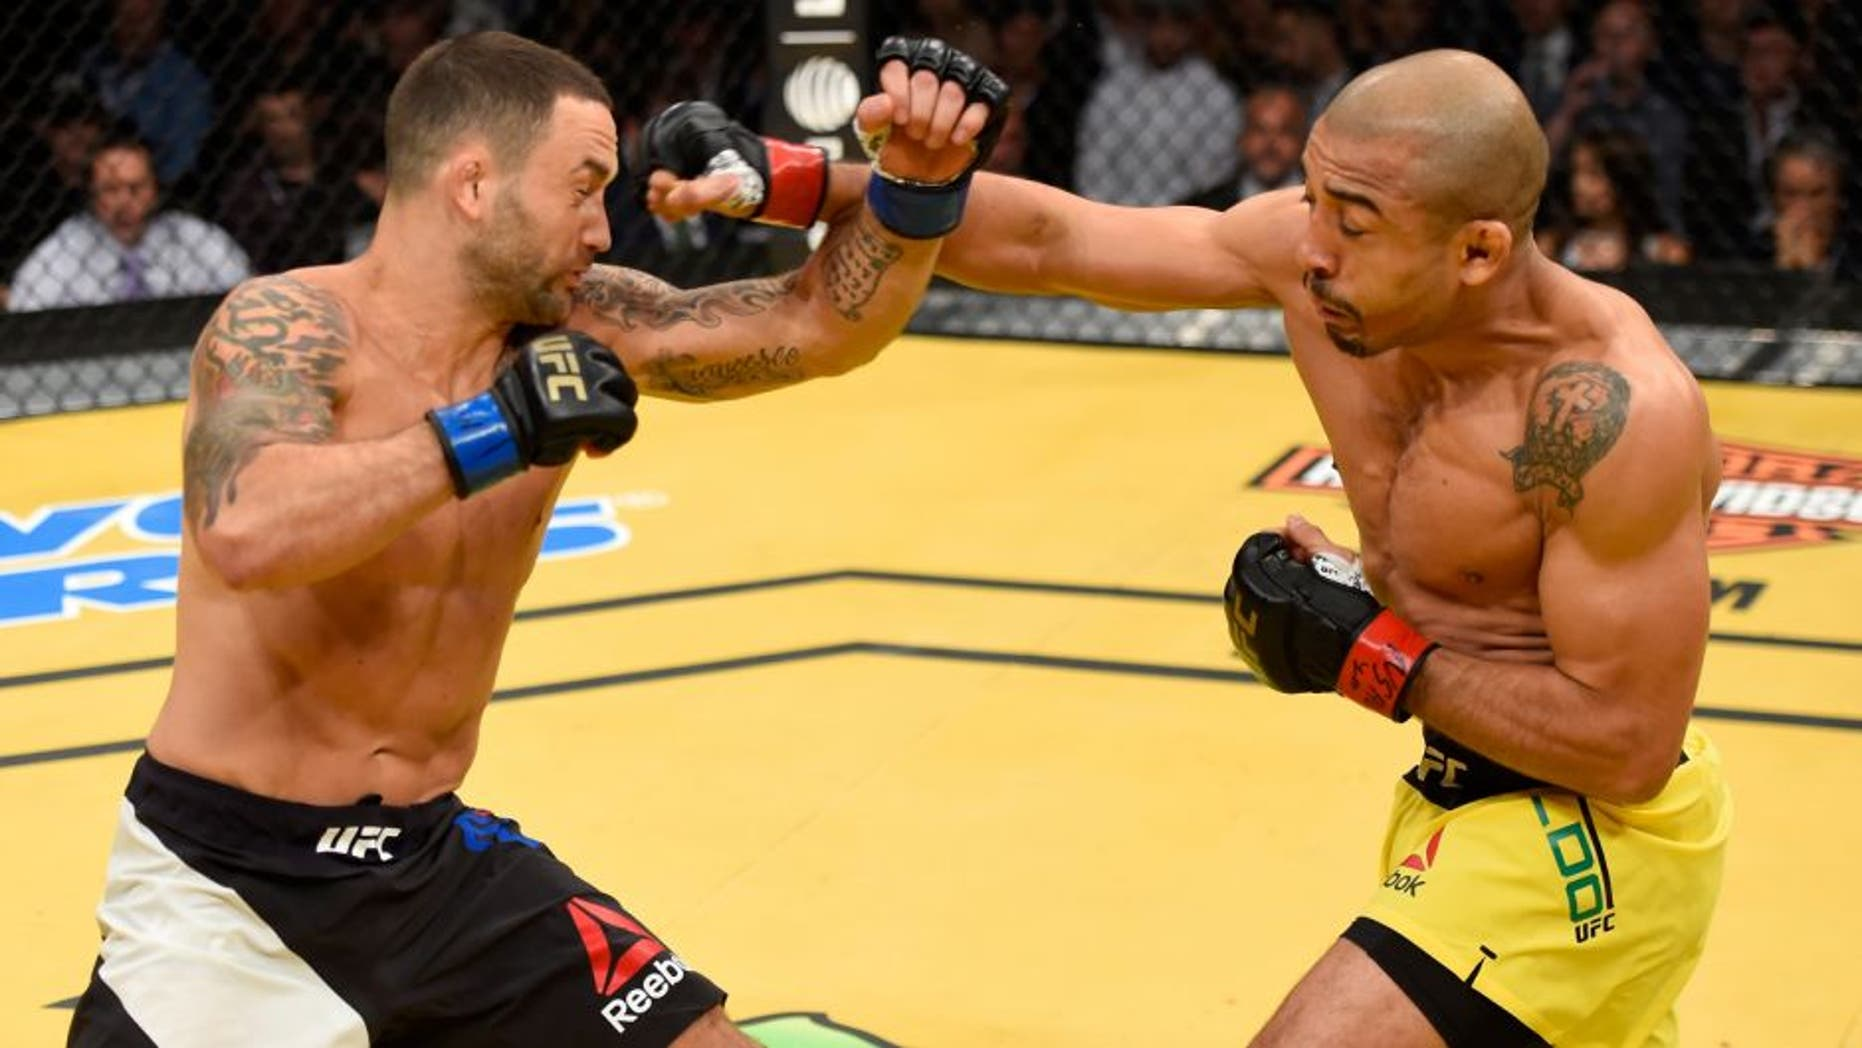 LAS VEGAS, NV - JULY 09: (R-L) Jose Aldo of Brazil punches Frankie Edgar in their UFC interim featherweight championship bout during the UFC 200 event on July 9, 2016 at T-Mobile Arena in Las Vegas, Nevada. (Photo by Josh Hedges/Zuffa LLC/Zuffa LLC via Getty Images)